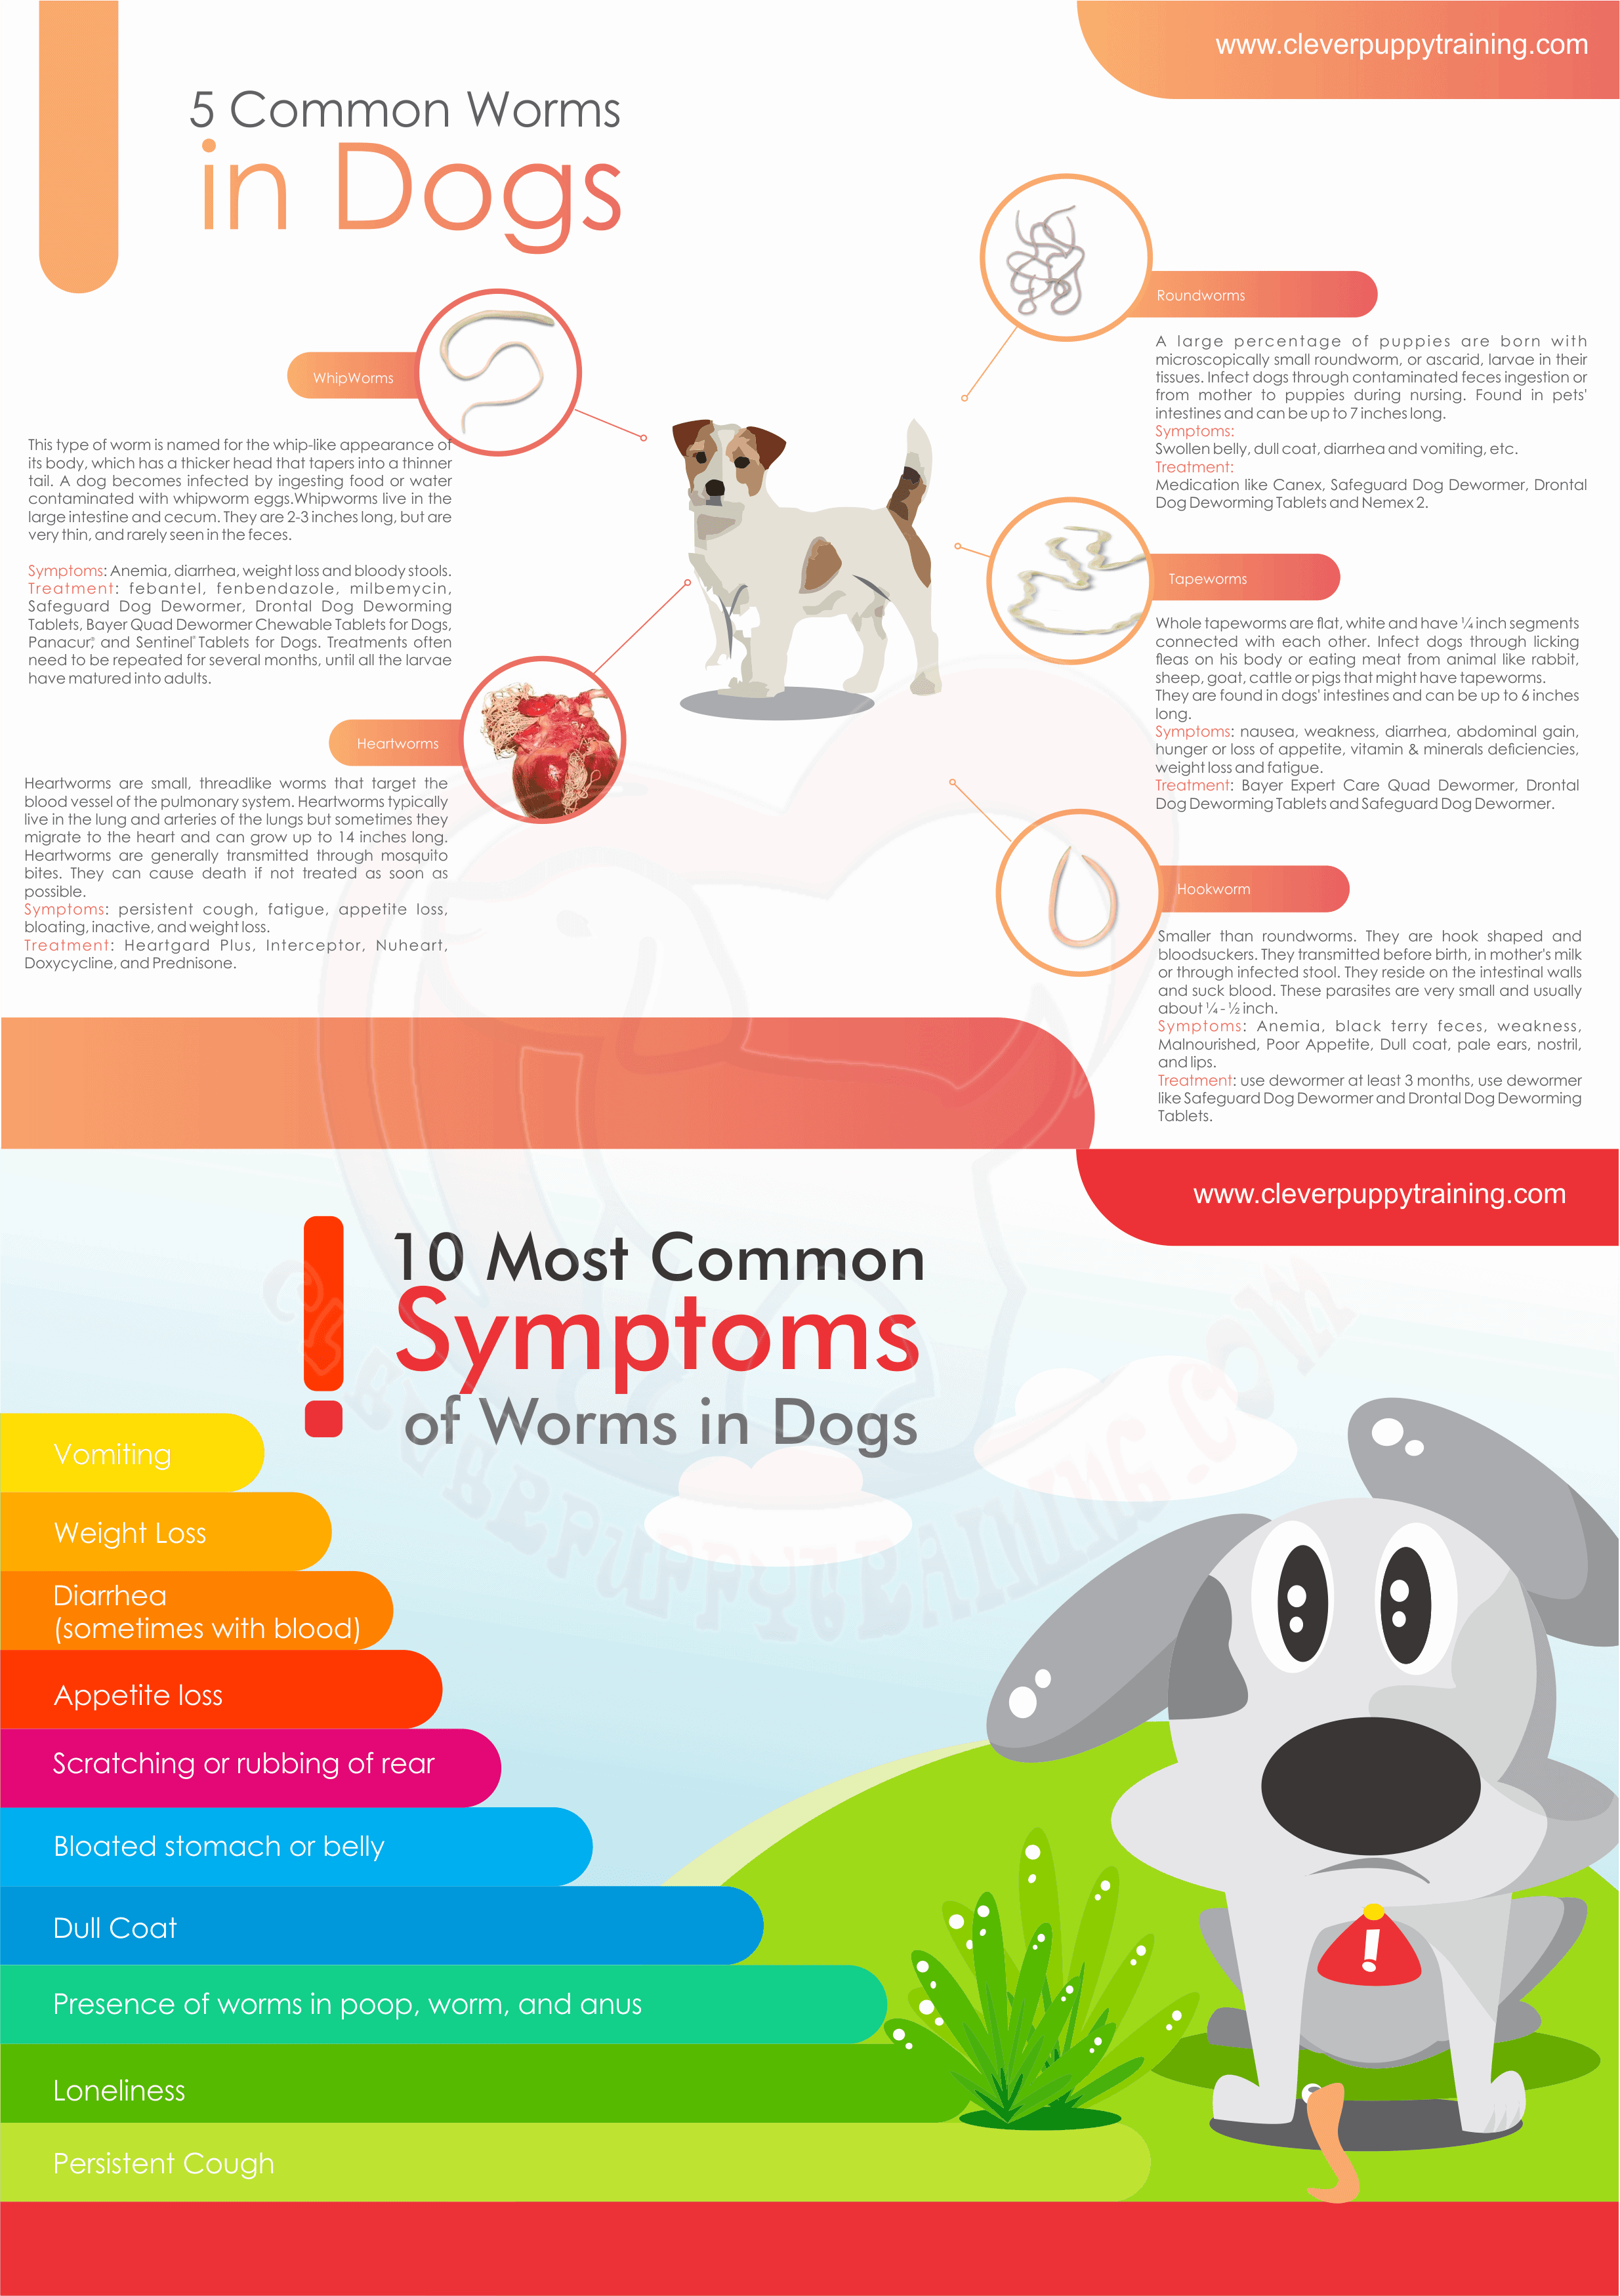 Worms in Dogs - Types of worms and Symptoms